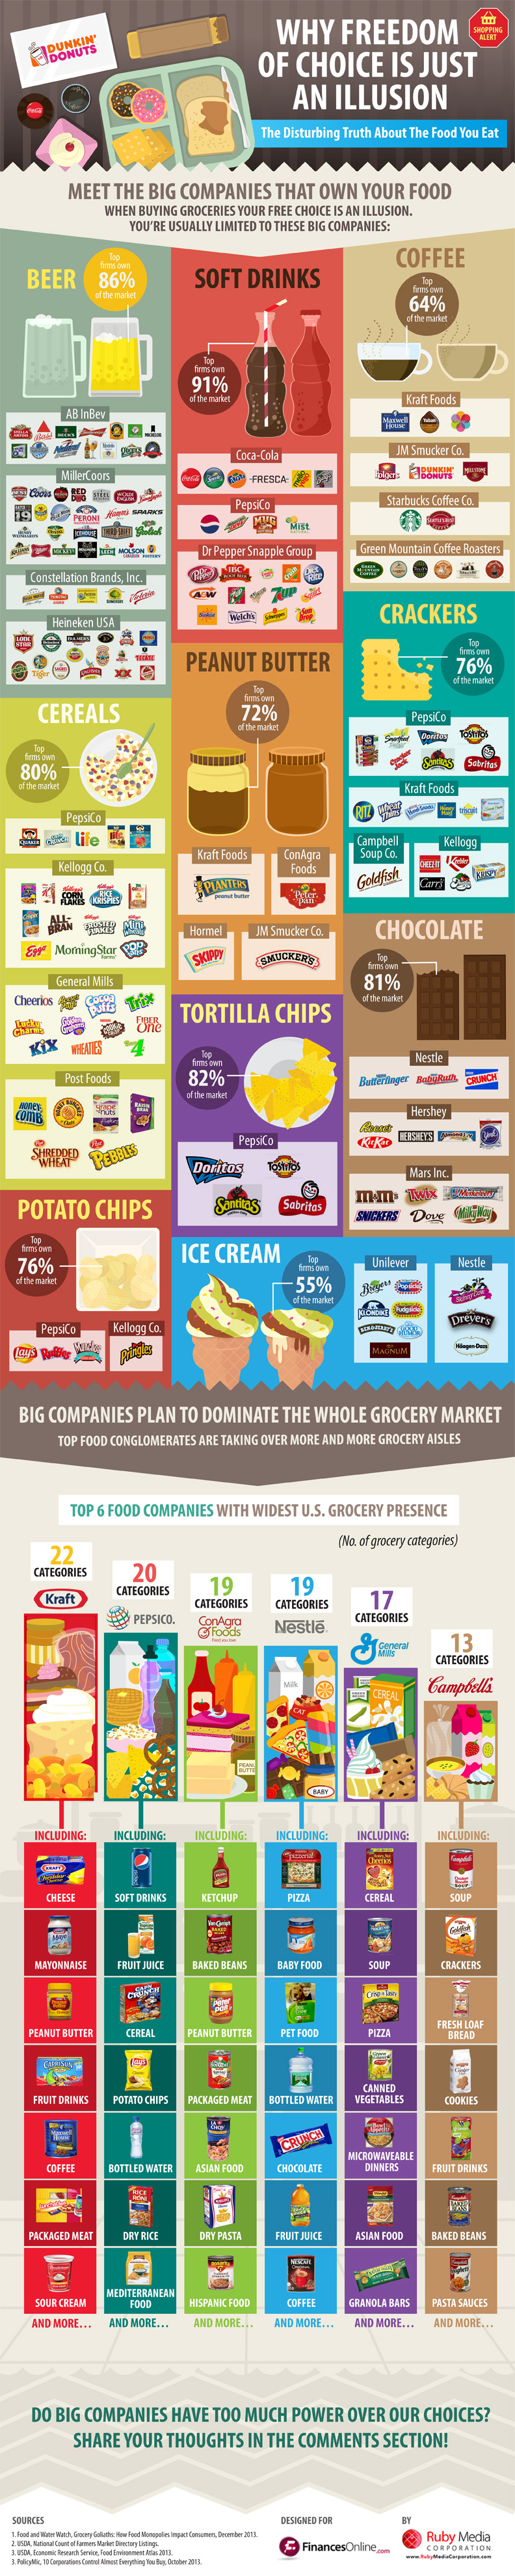 Top Grocery Brands Comparison Disturbing Truth About How Big Food Companies Exploit Your Shopping Habits Finances Food Infographic Company Meals Infographic